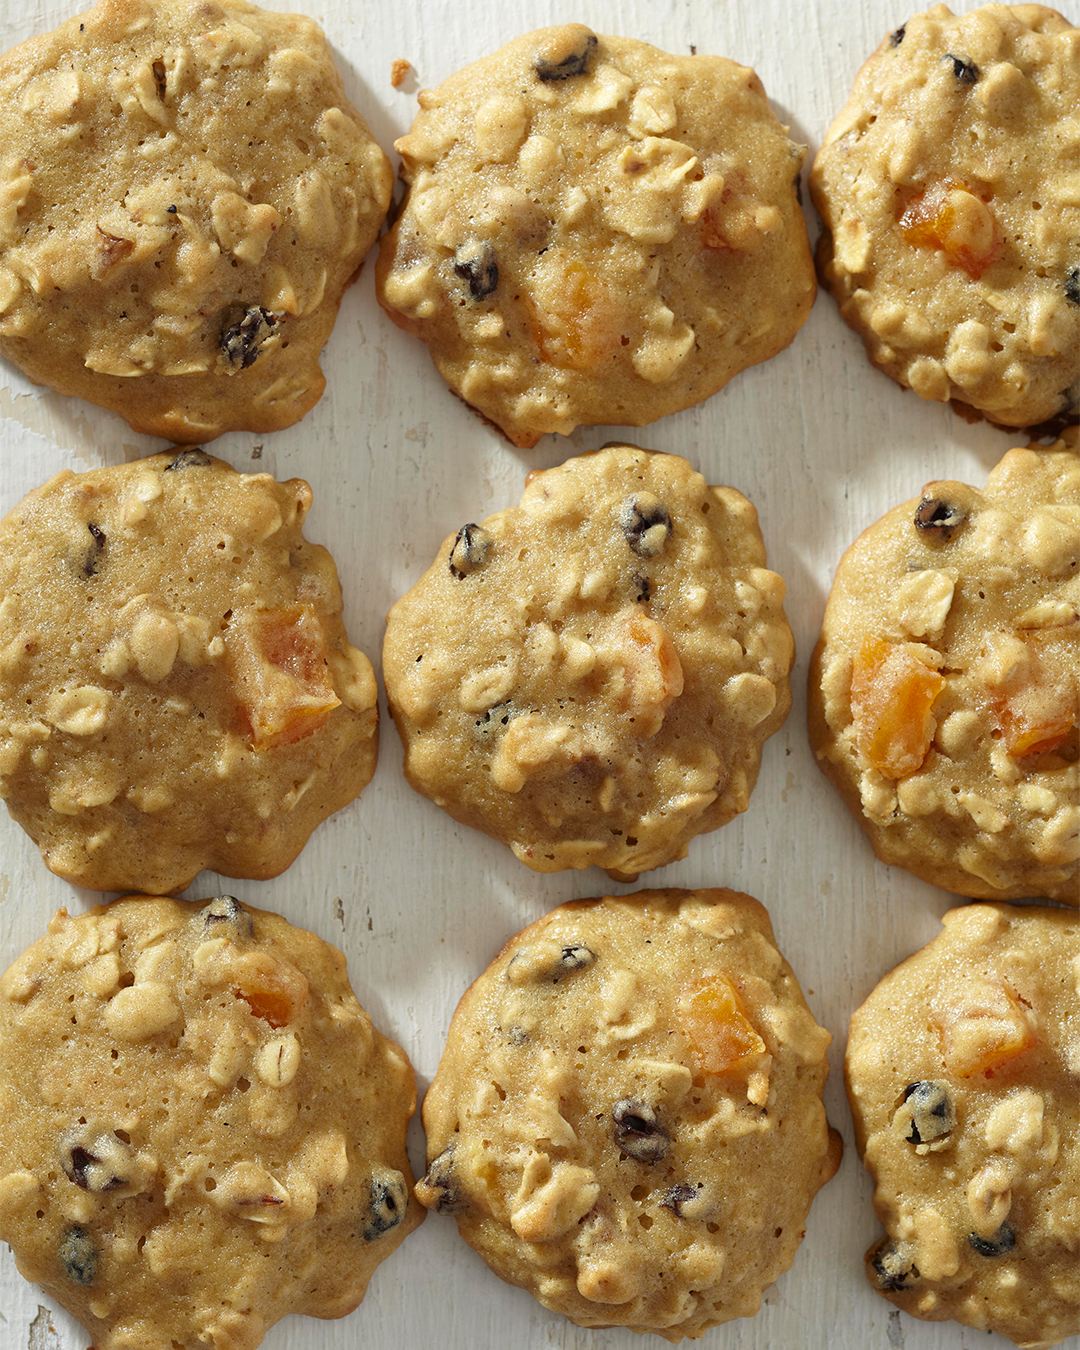 Fruity Oatmeal Cookies in grid on white table